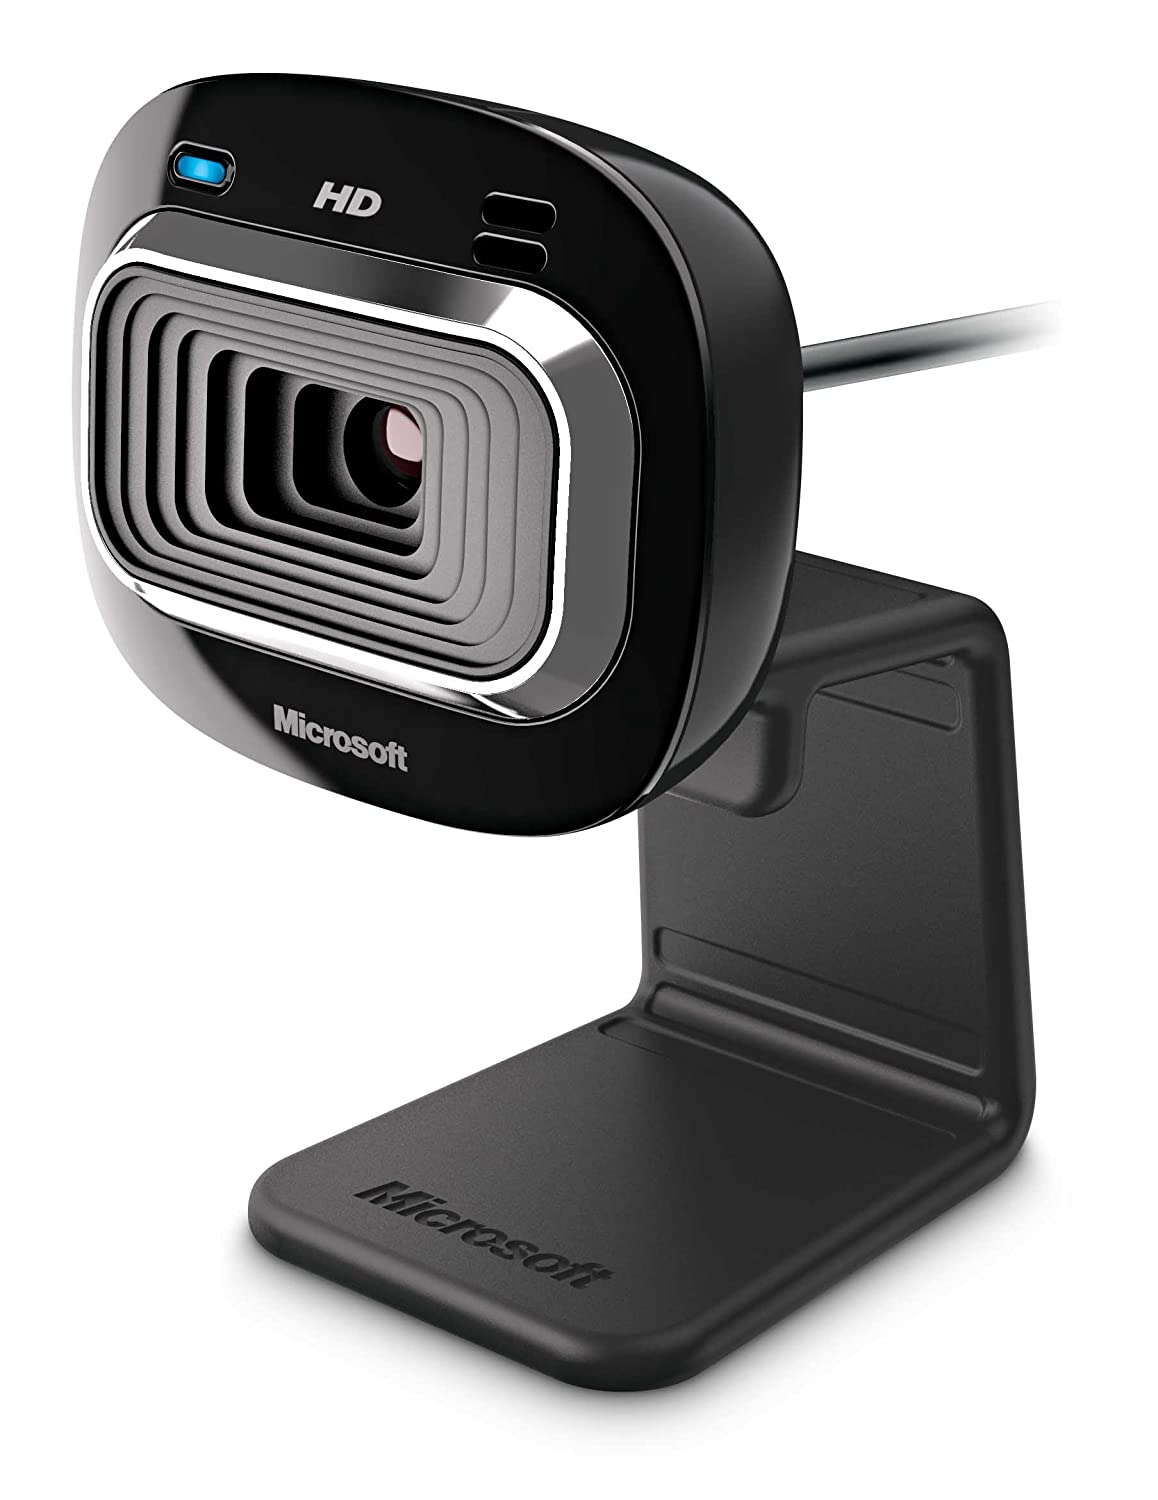 Microsoft T3H-00013 HD-3000 LifeCam Webcam